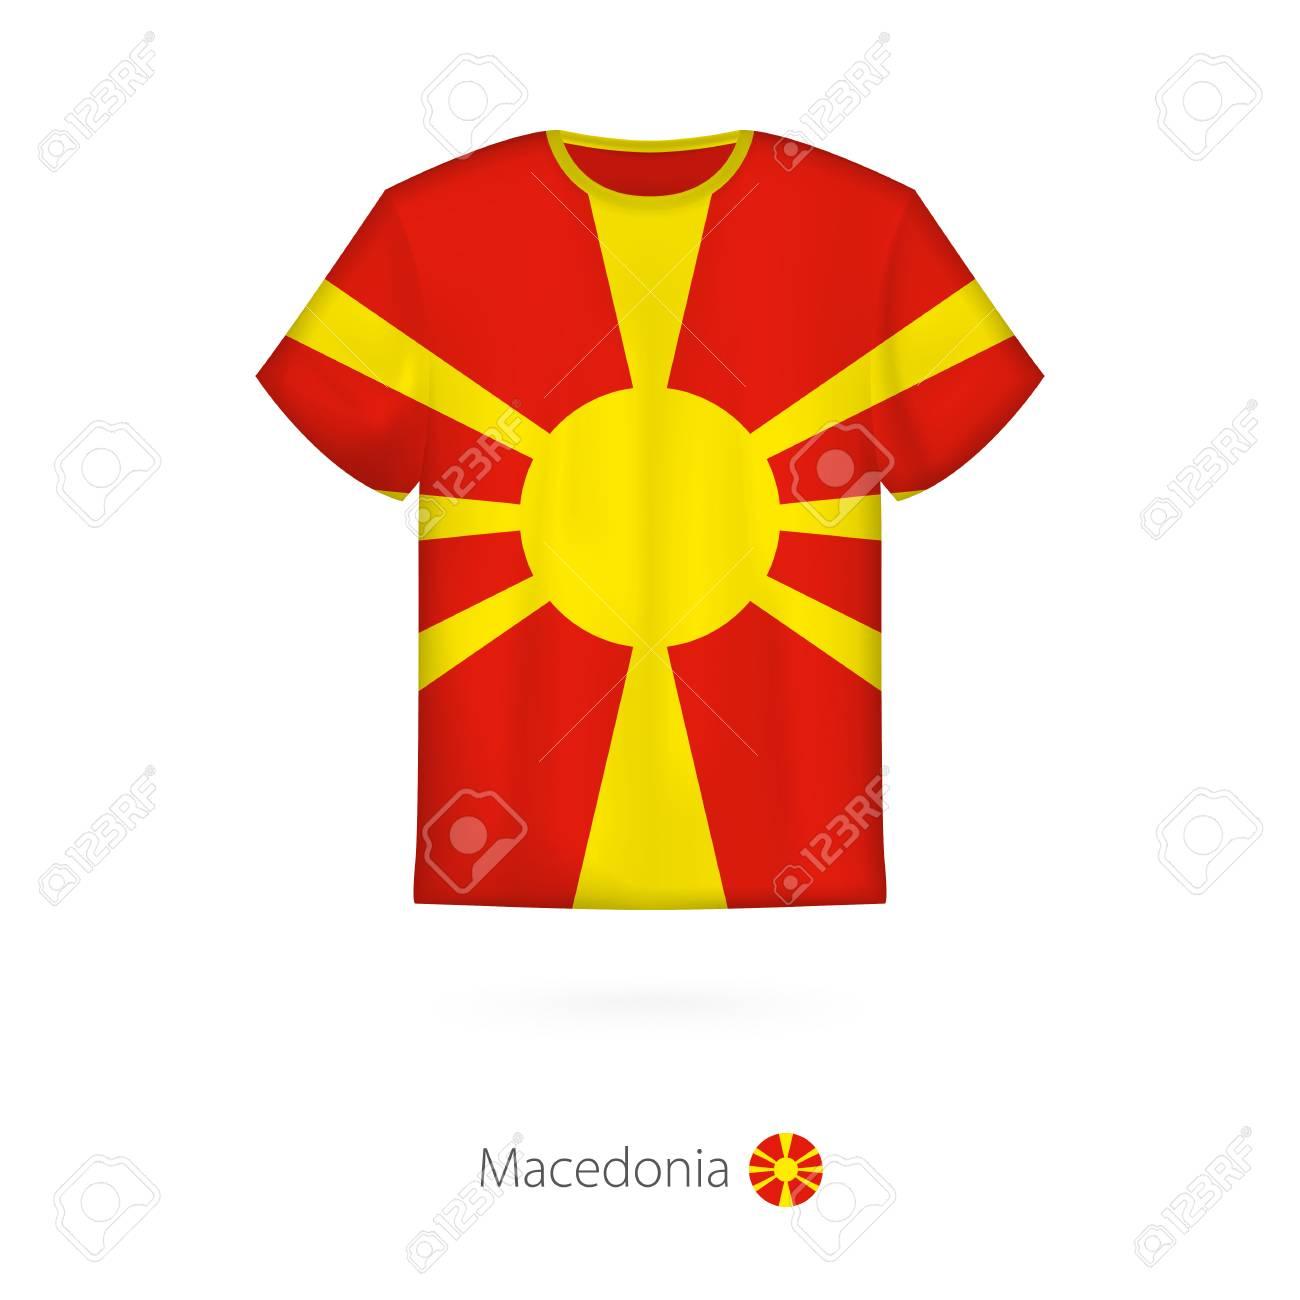 ae241b5ac T-shirt design with flag of Macedonia. T-shirt vector template. Stock